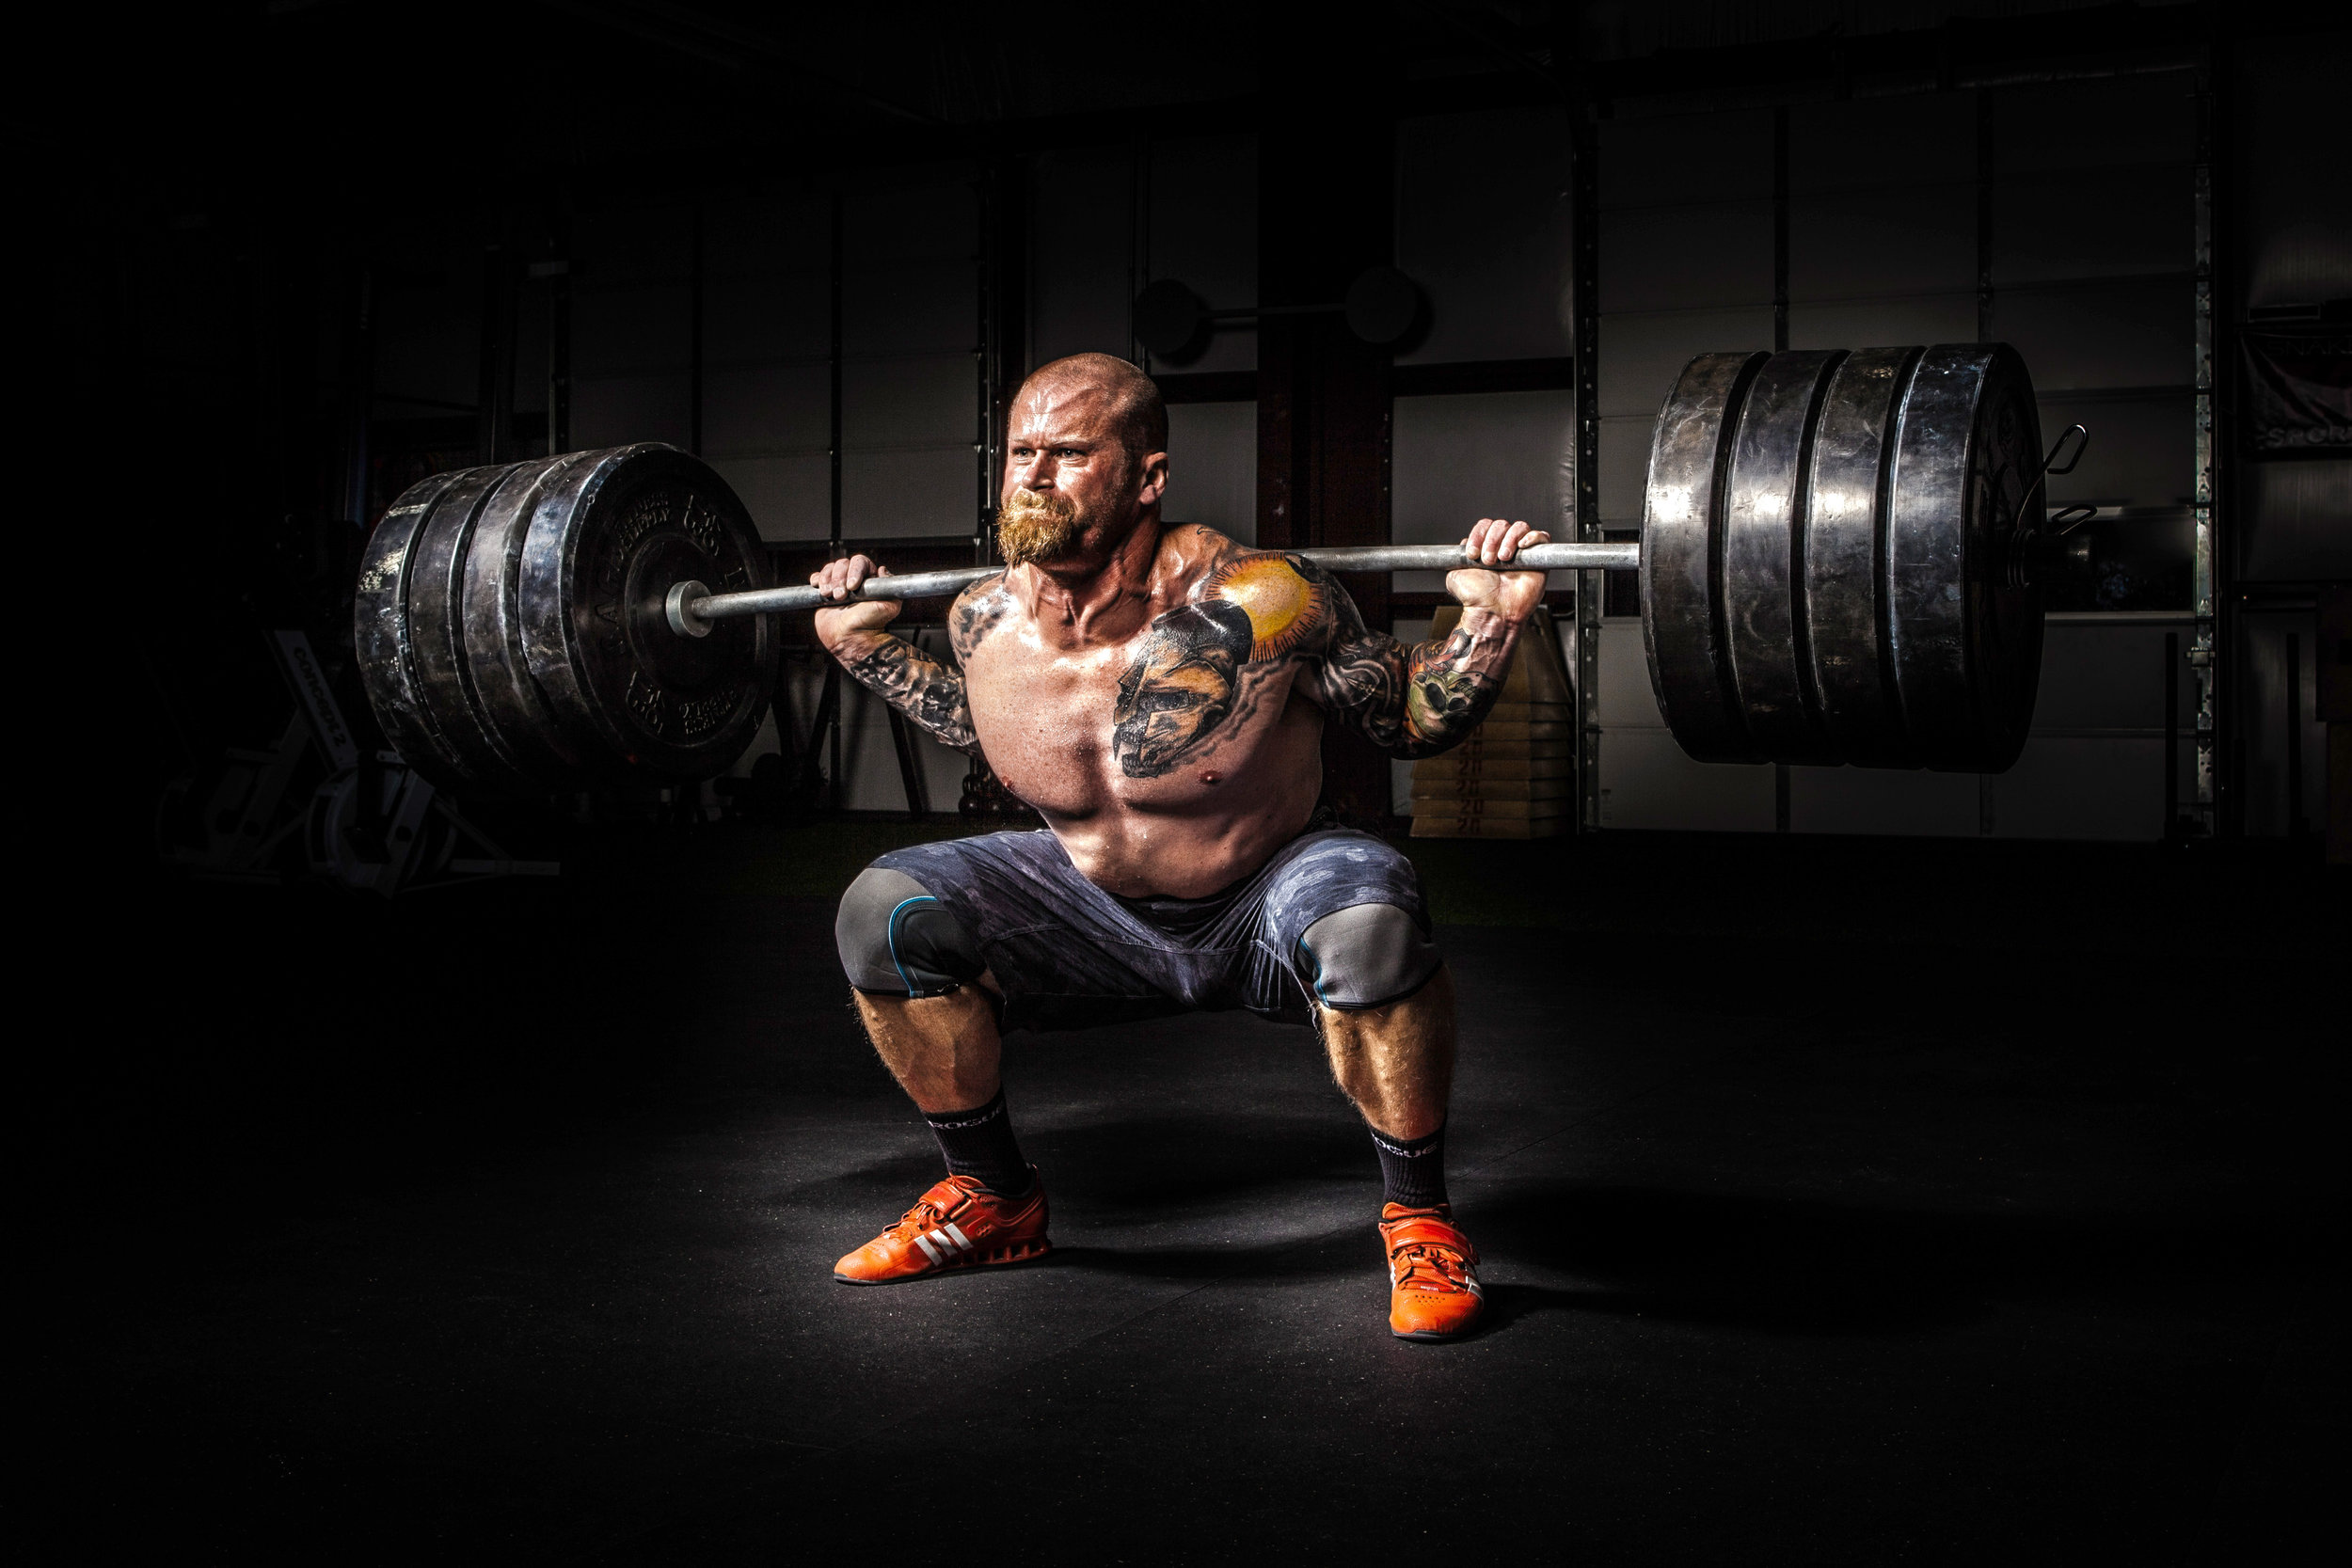 strong-man-squatting-lot-of-weight.jpg